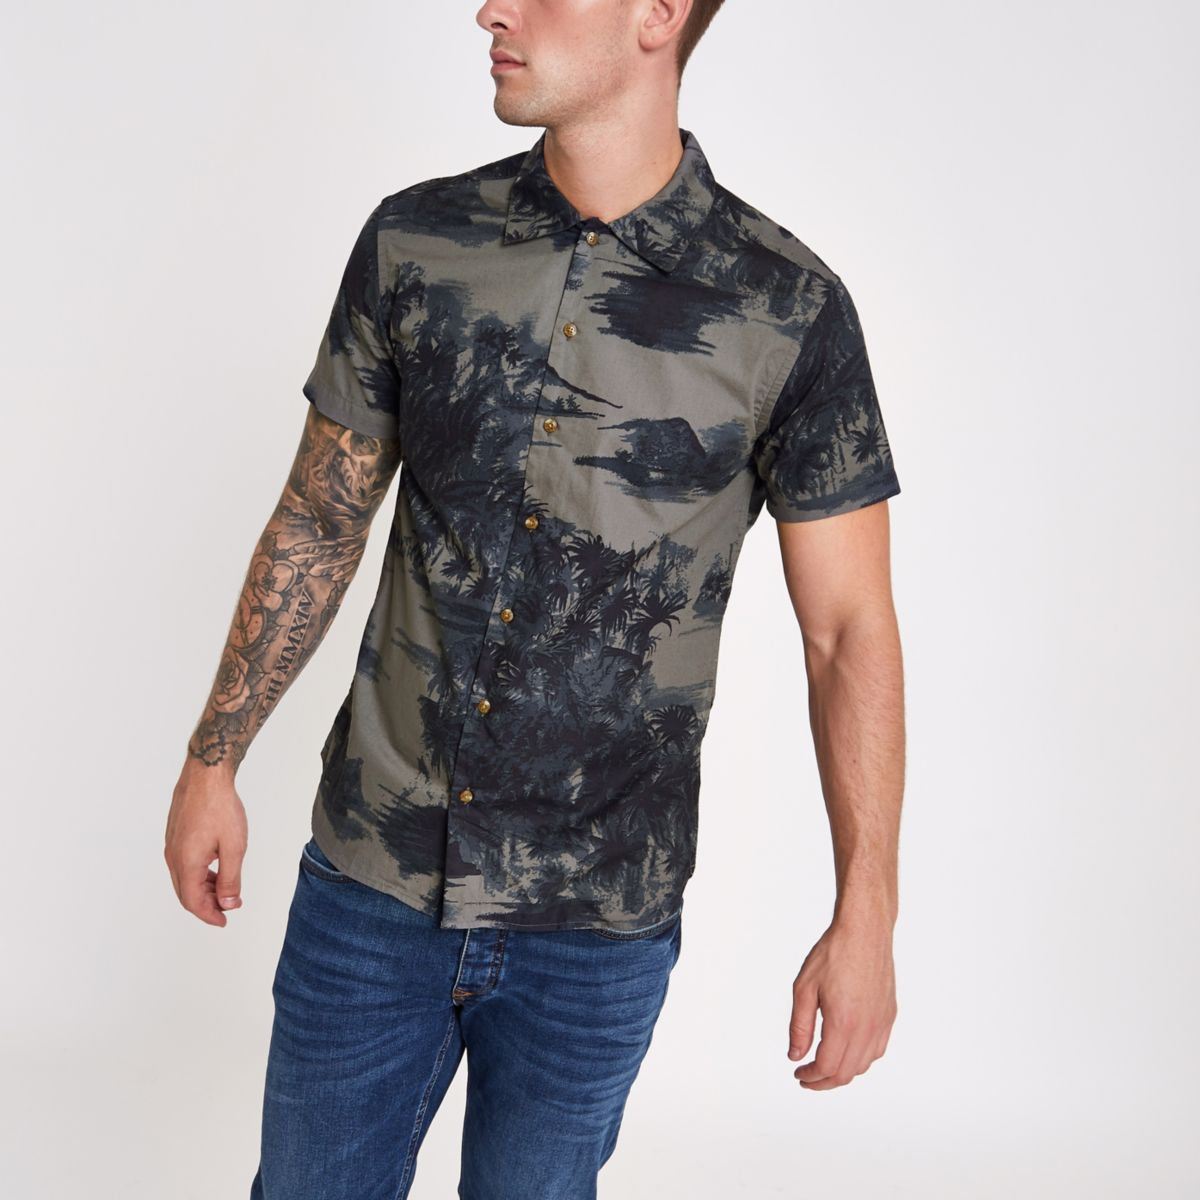 Jack & Jones navy Hawaii print shirt